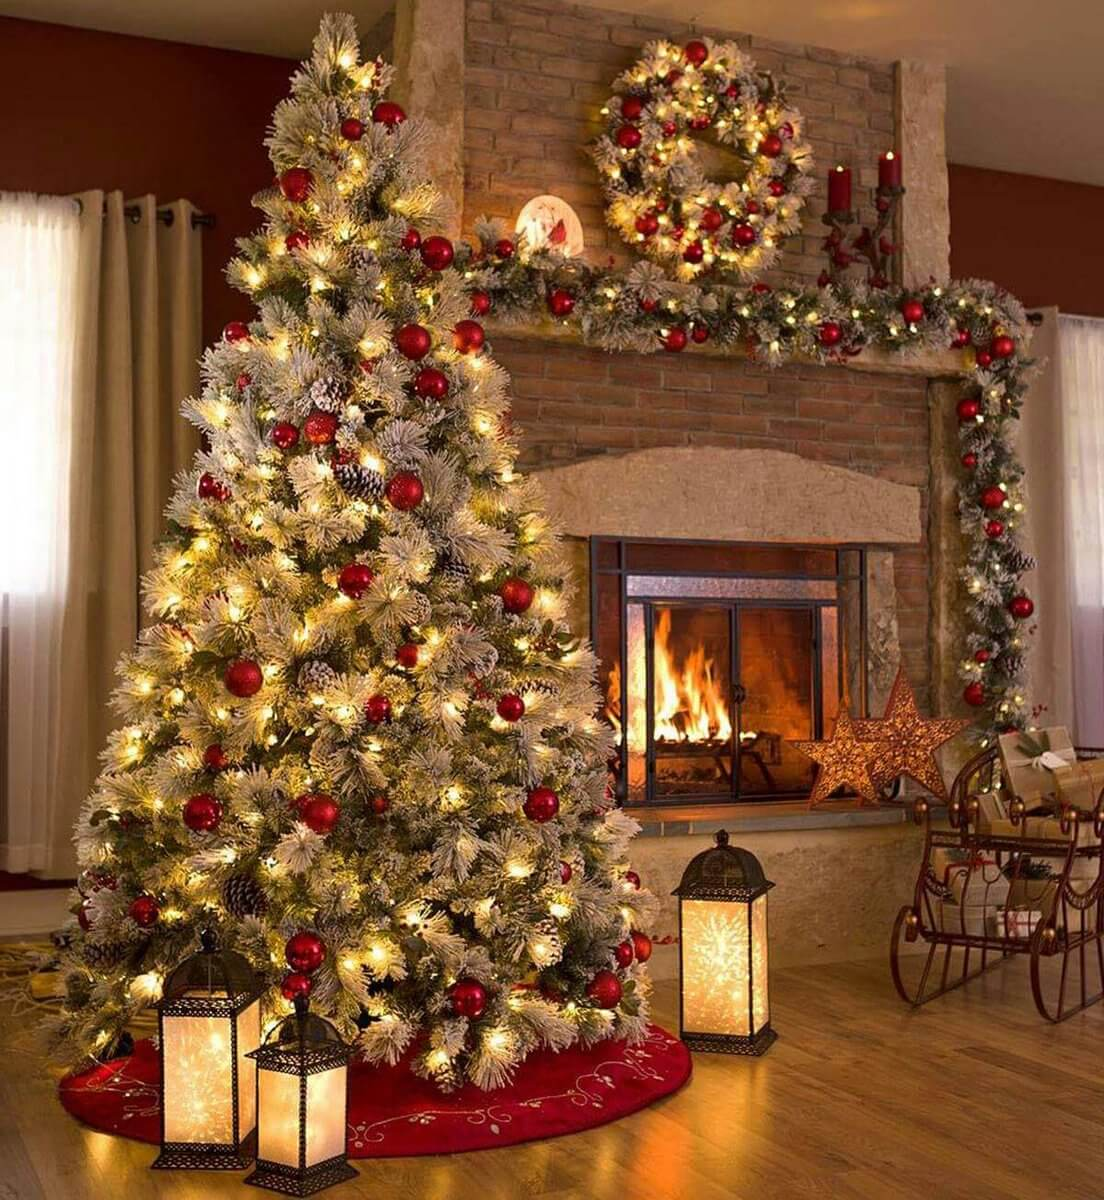 Home Design Ideas For Christmas: 32 Best Christmas Living Room Decor Ideas And Designs For 2019